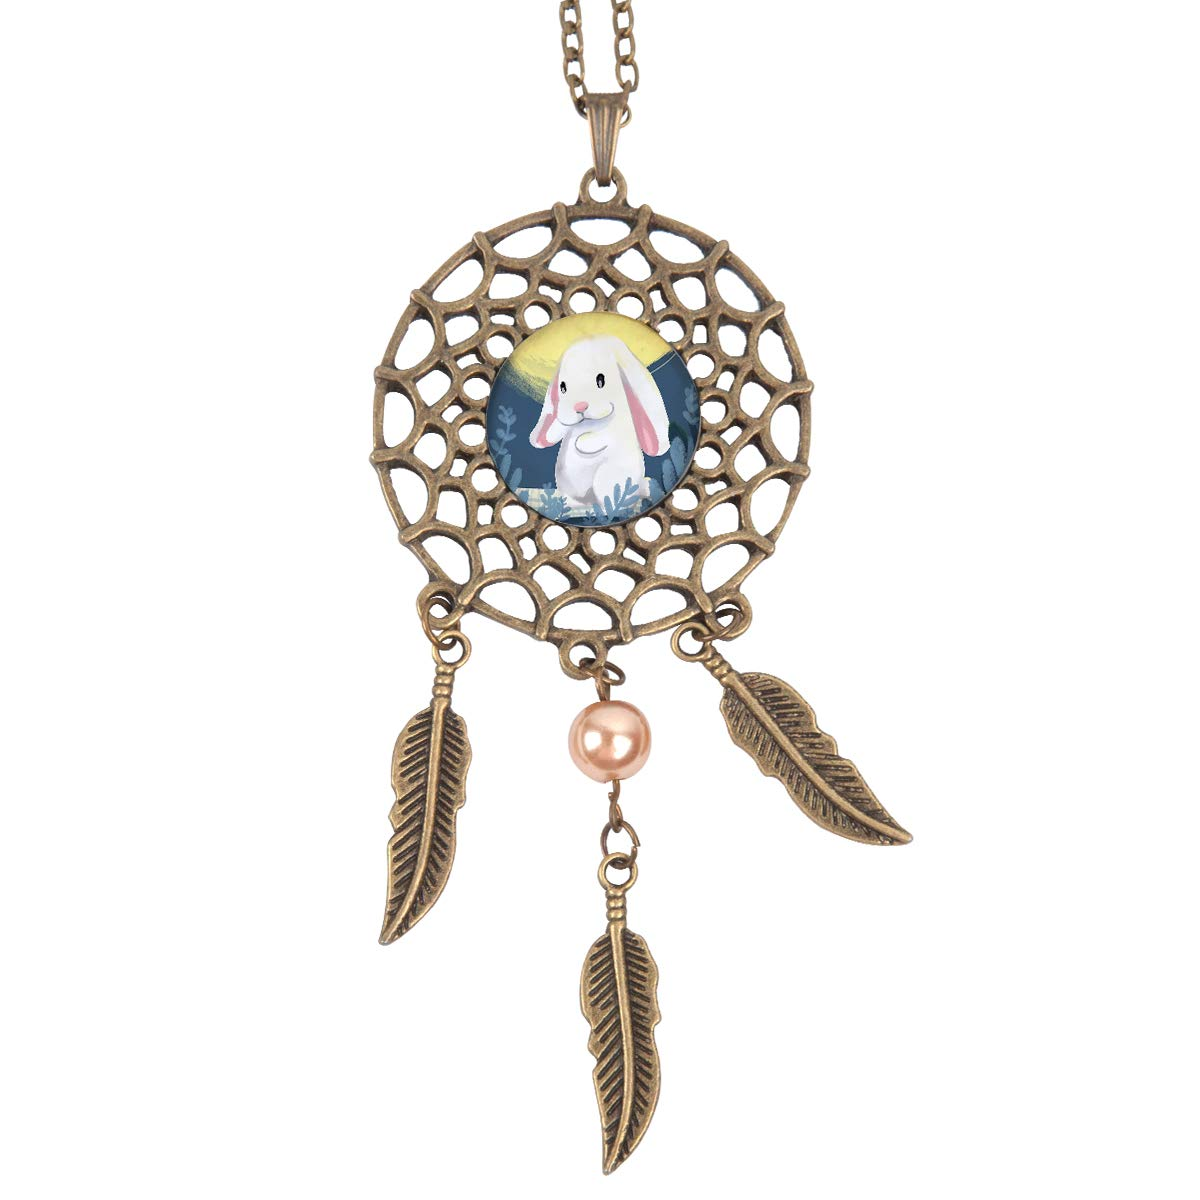 Queen Area Dream Catcher Necklace Moon and Rabbit Pendant Dangling Feather Tassel Bead Charm Chain Jewelry for Women